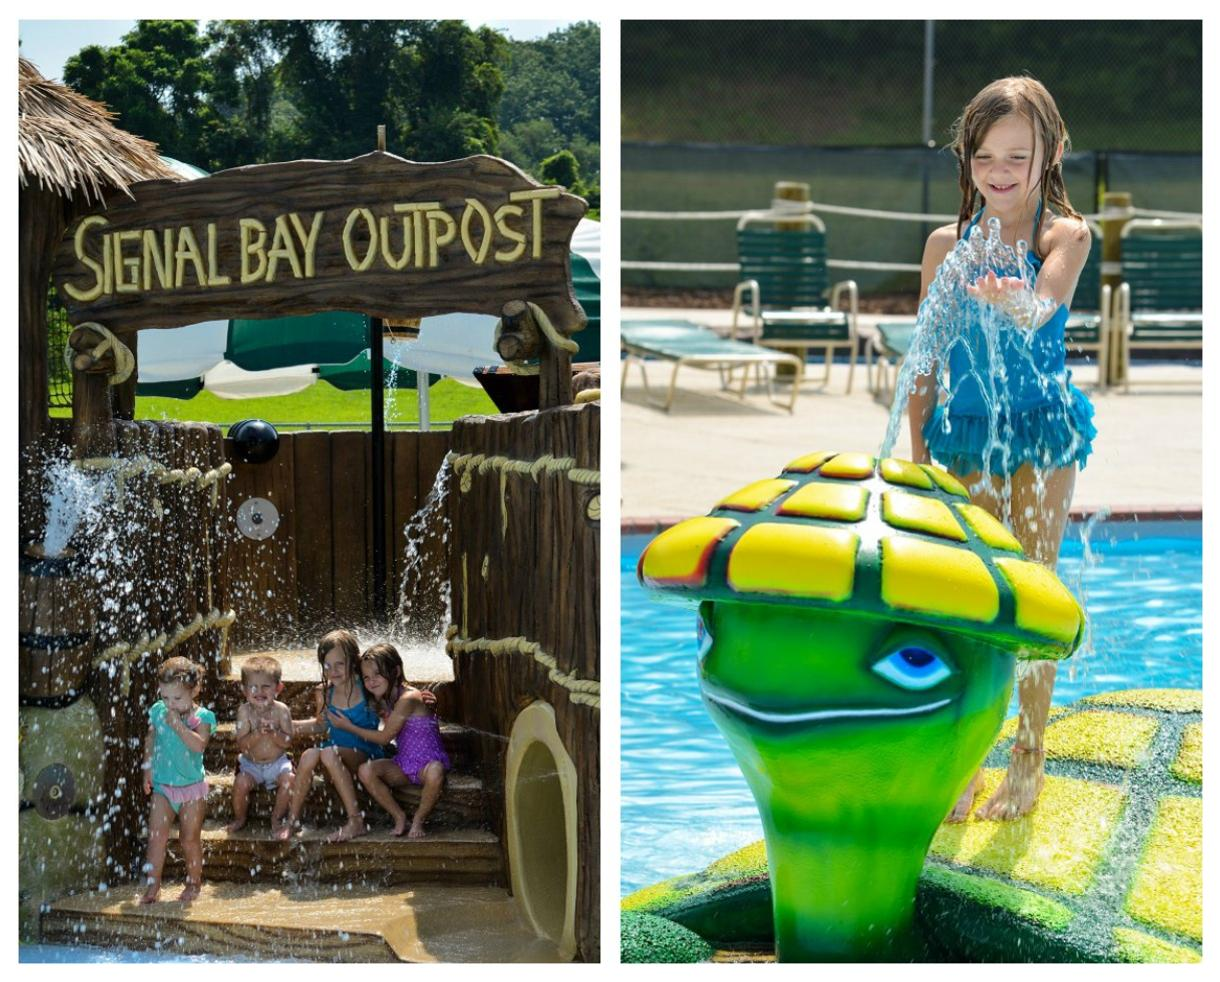 Signal Bay Water Park 4-Pack of Day Passes